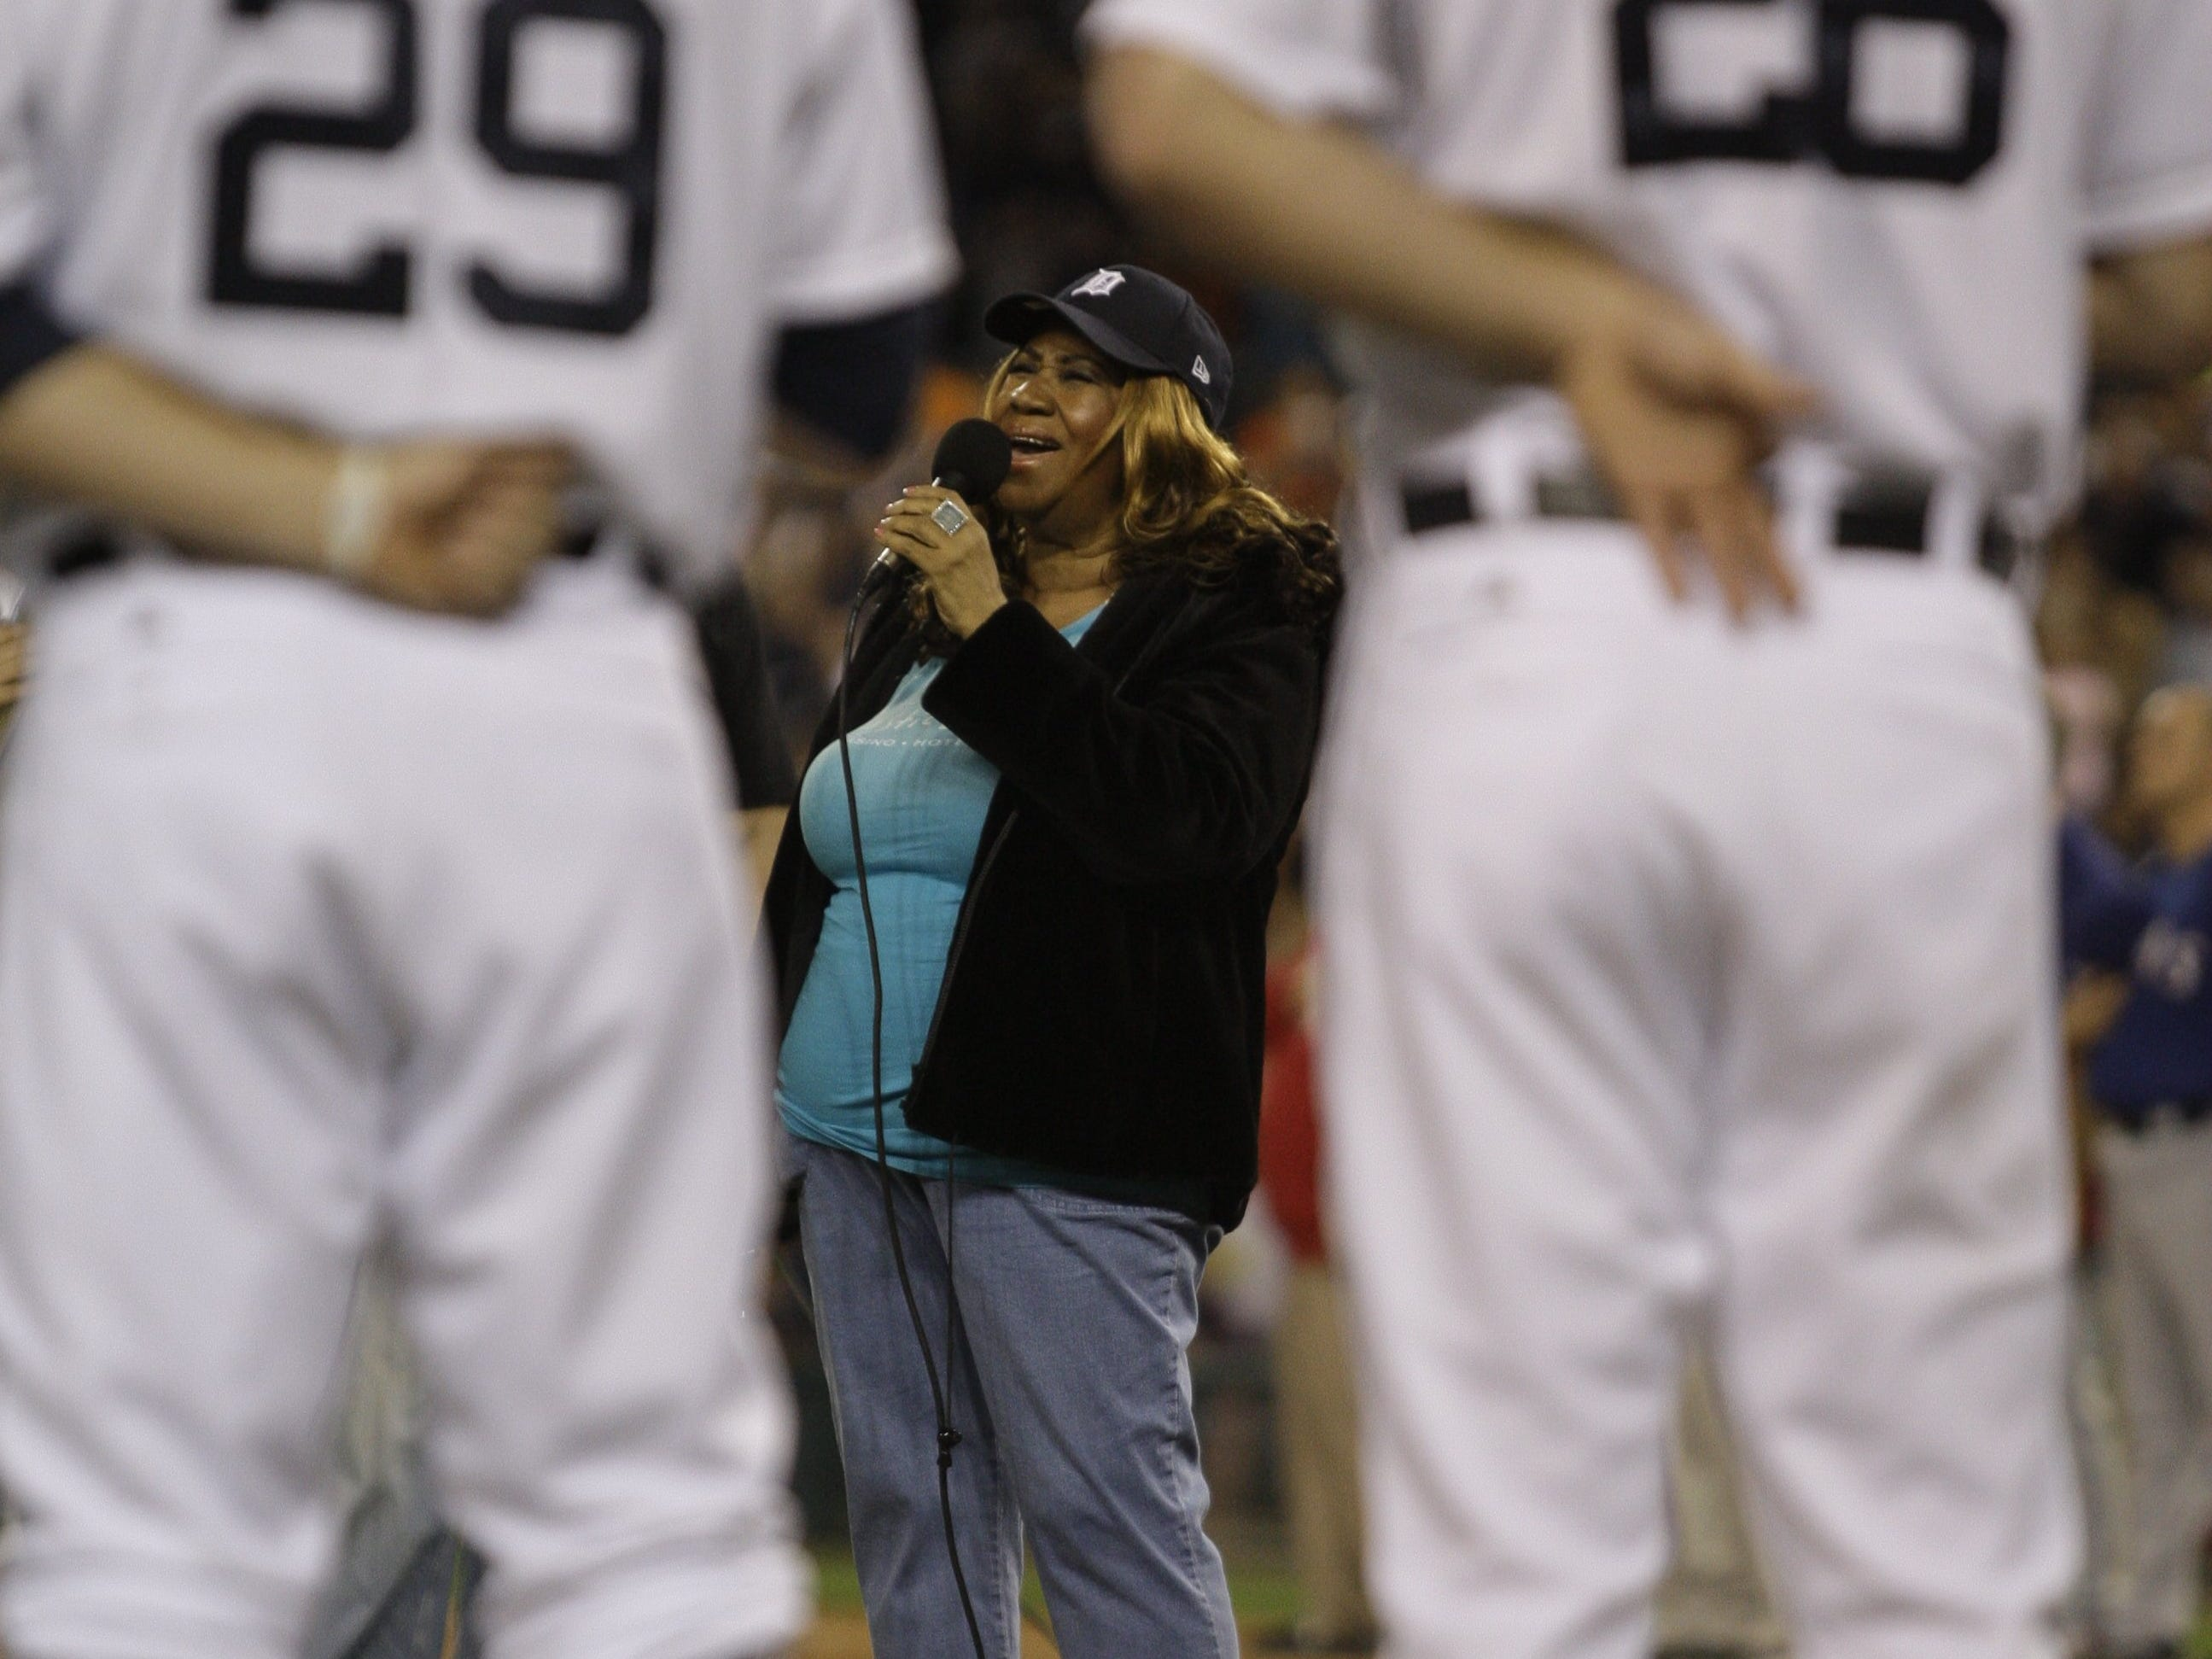 Aretha Franklin belts out the National Anthem prior to the start of Game 3 of ALCS series  against the Texas Rangers on Tuesday, October 11,  2011. JULIAN H. GONZALEZ/Detroit Free Press (Via OlyDrop)